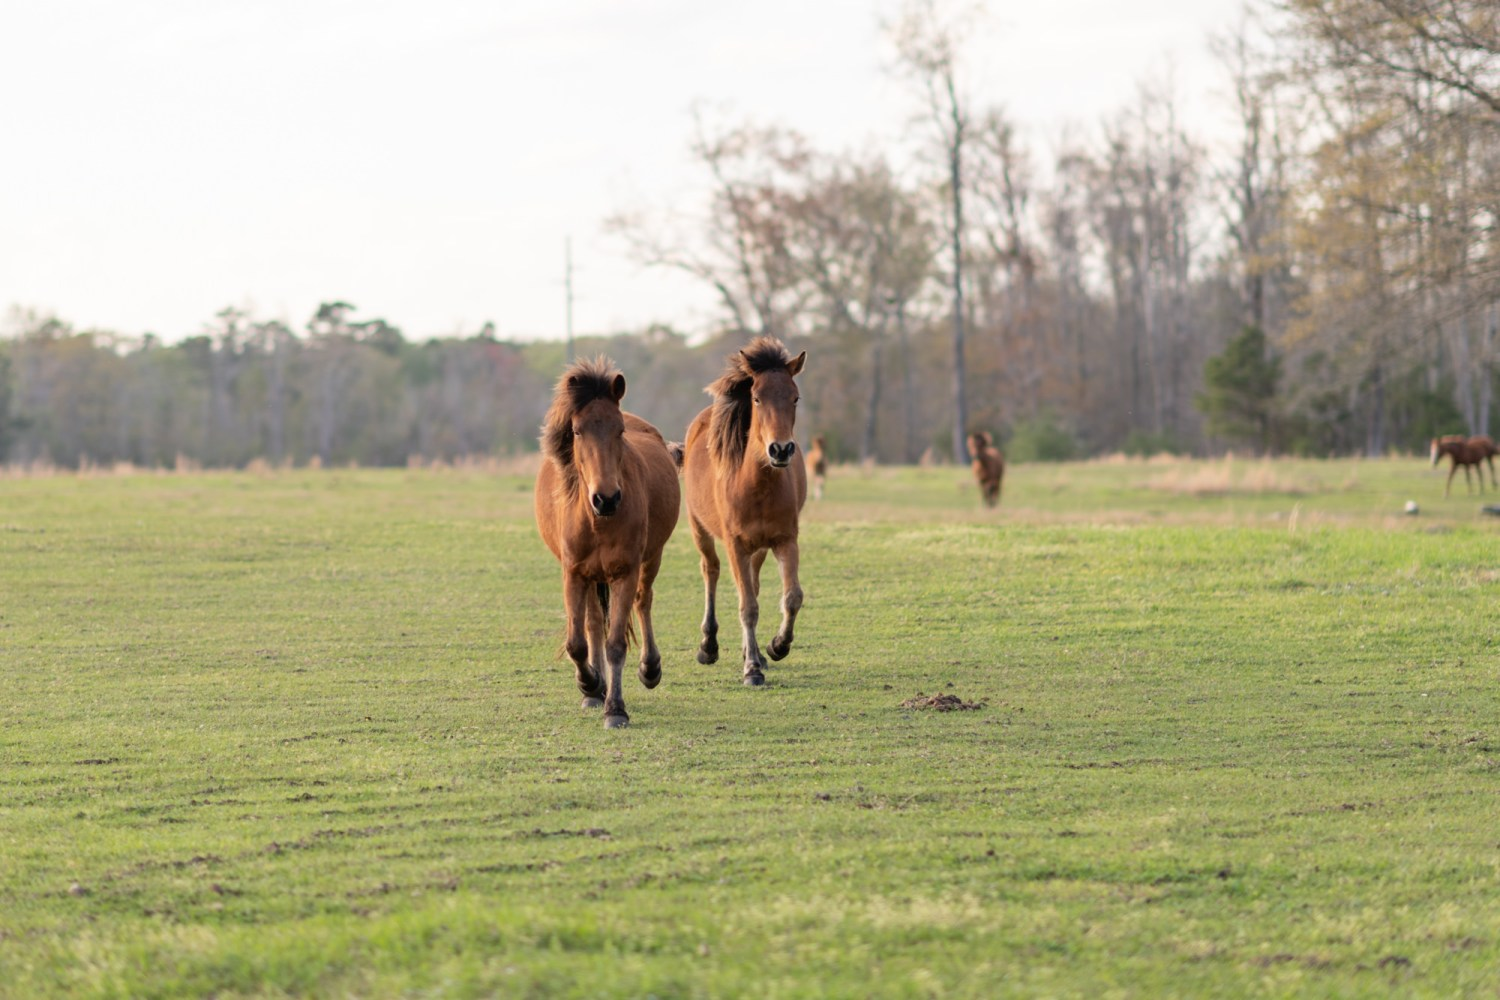 Horses running to meet us - Wildhorse at Parker Farms